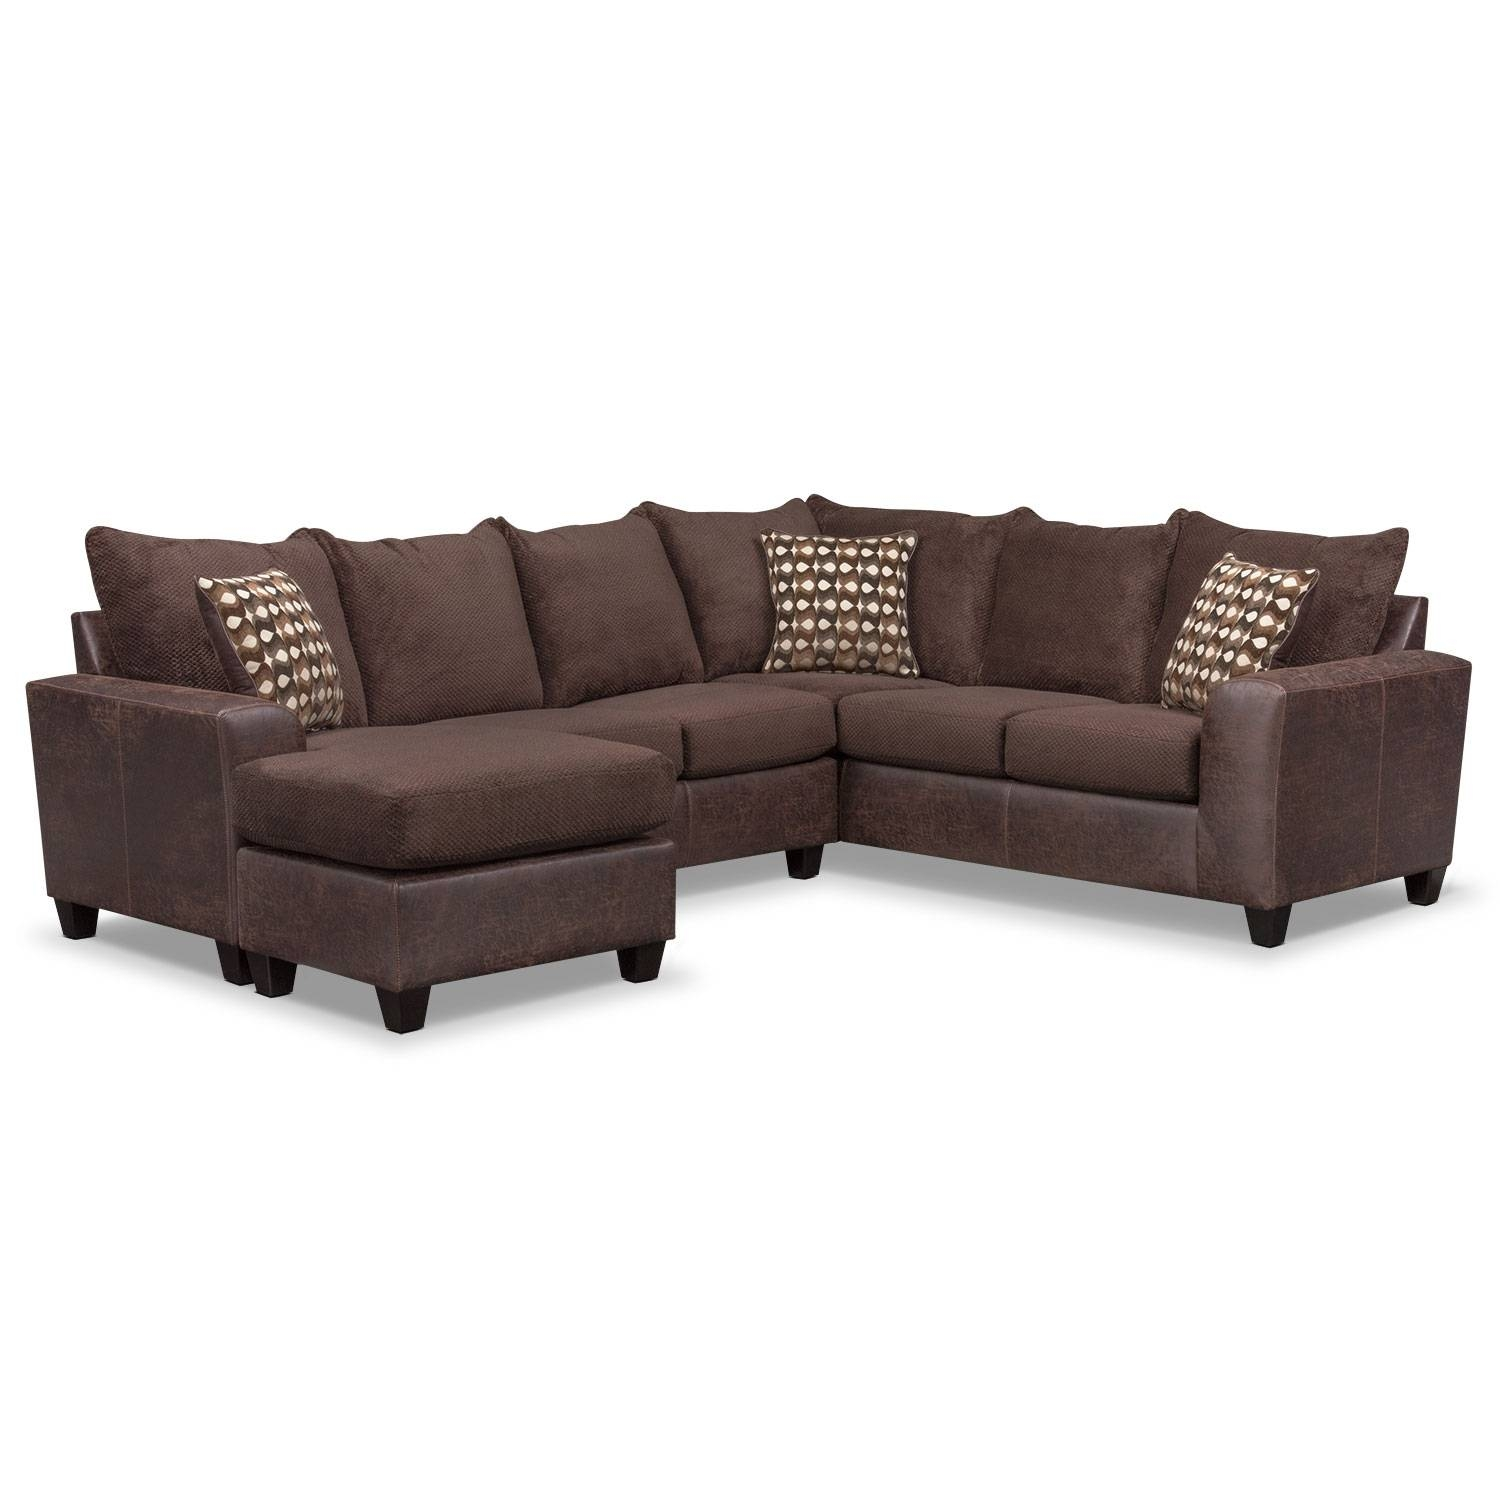 Brando 3-Piece Sectional With Modular Chaise - Chocolate throughout Modular Corner Sofas (Image 8 of 30)